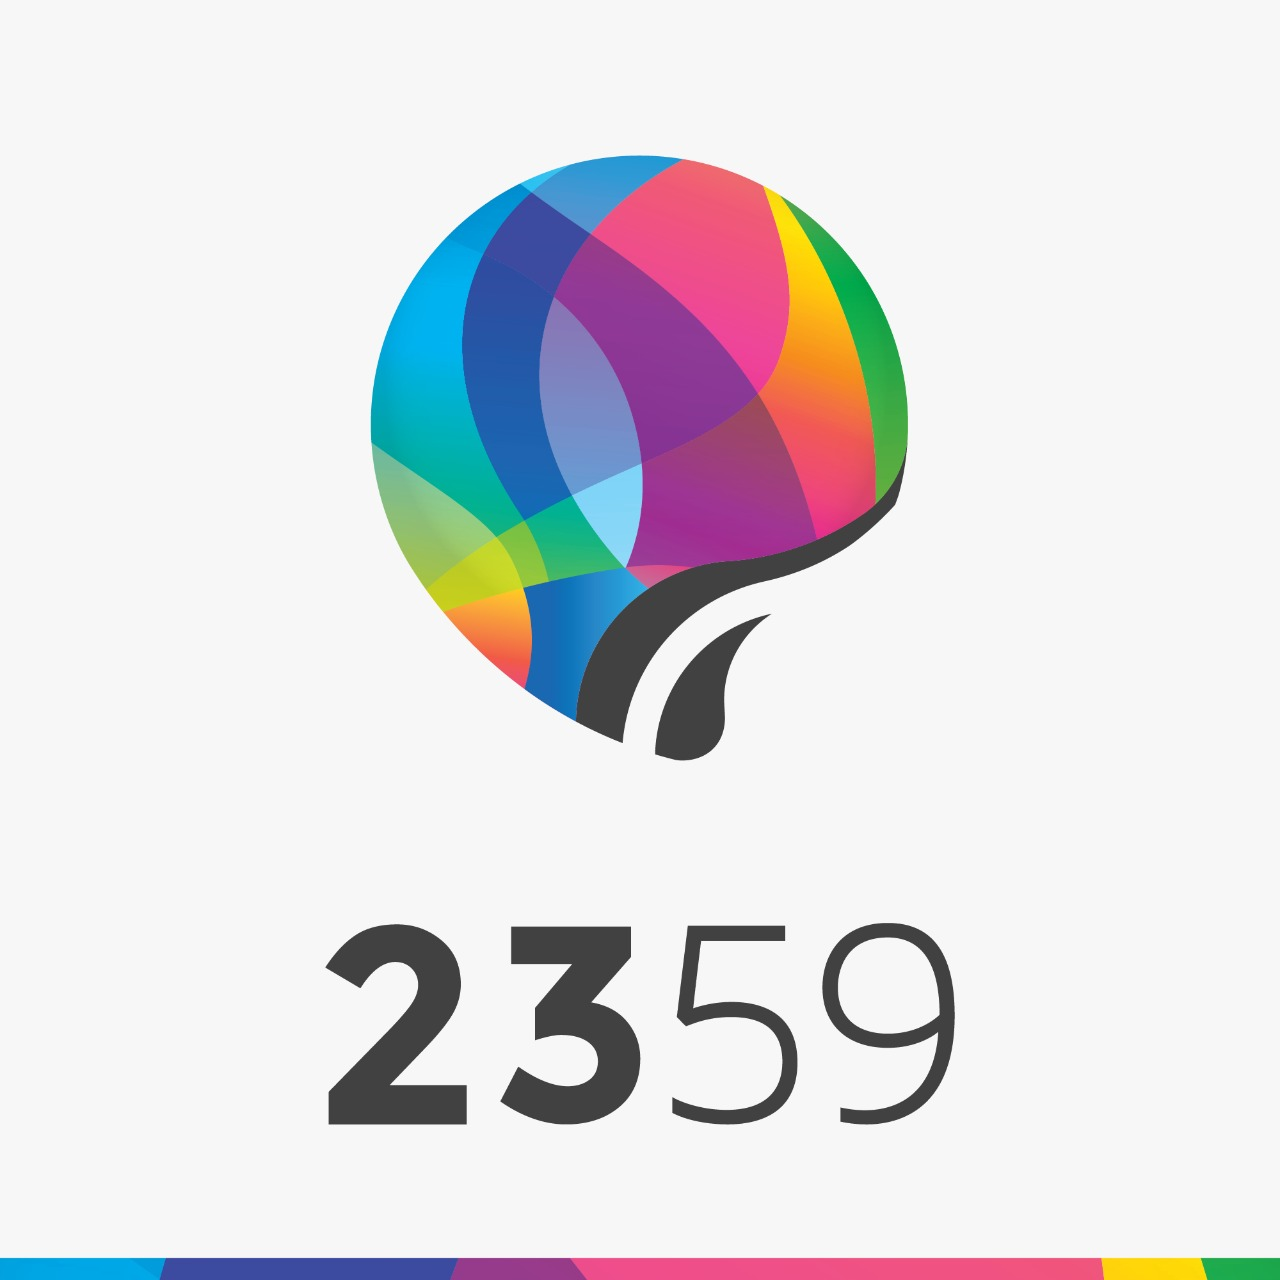 2359 Indonesia is hiring on Meet.jobs!